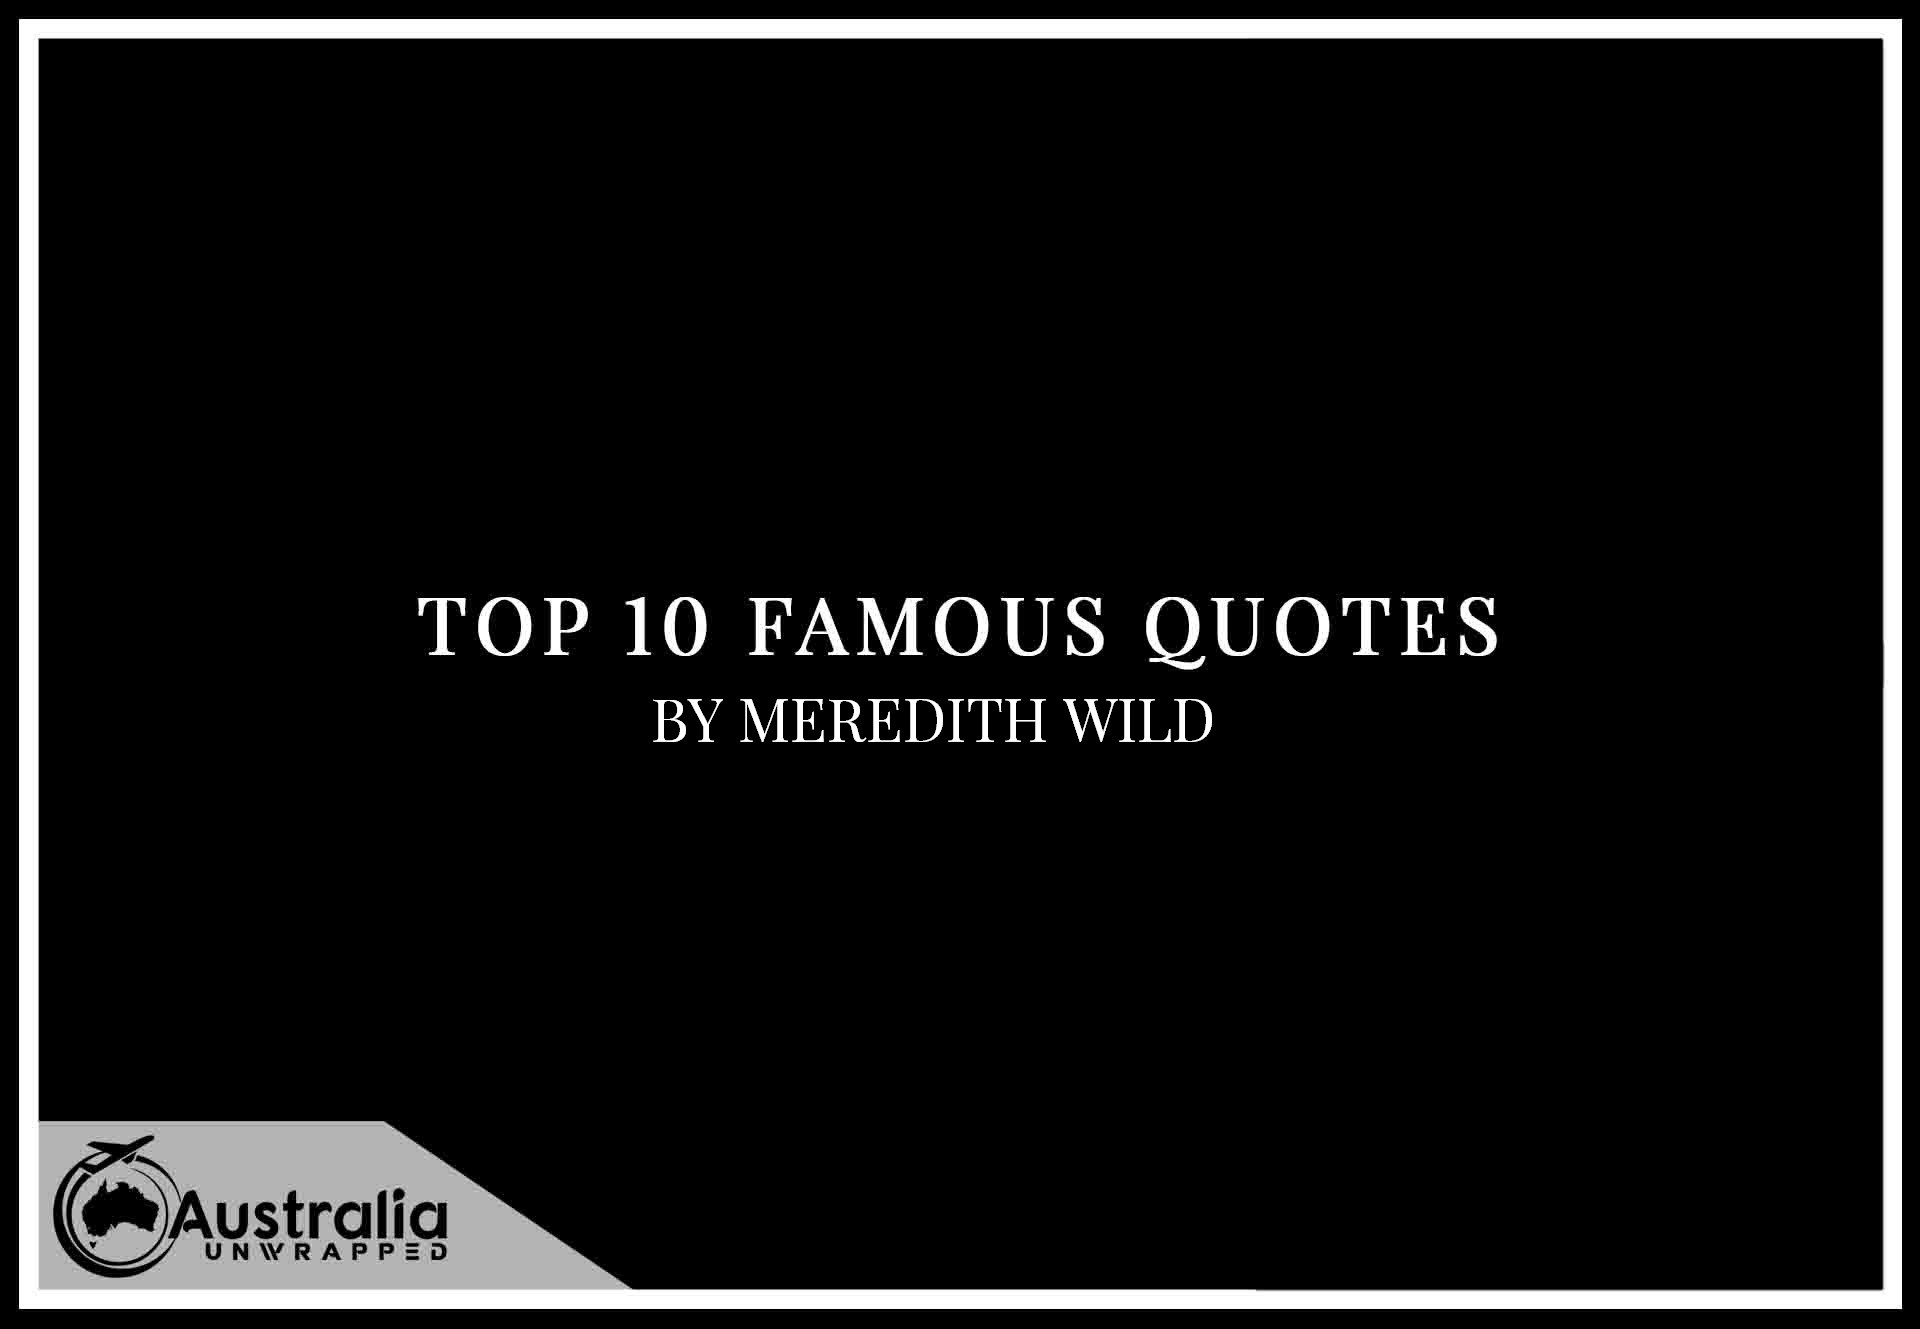 Top 10 Famous Quotes by Author Meredith Wild